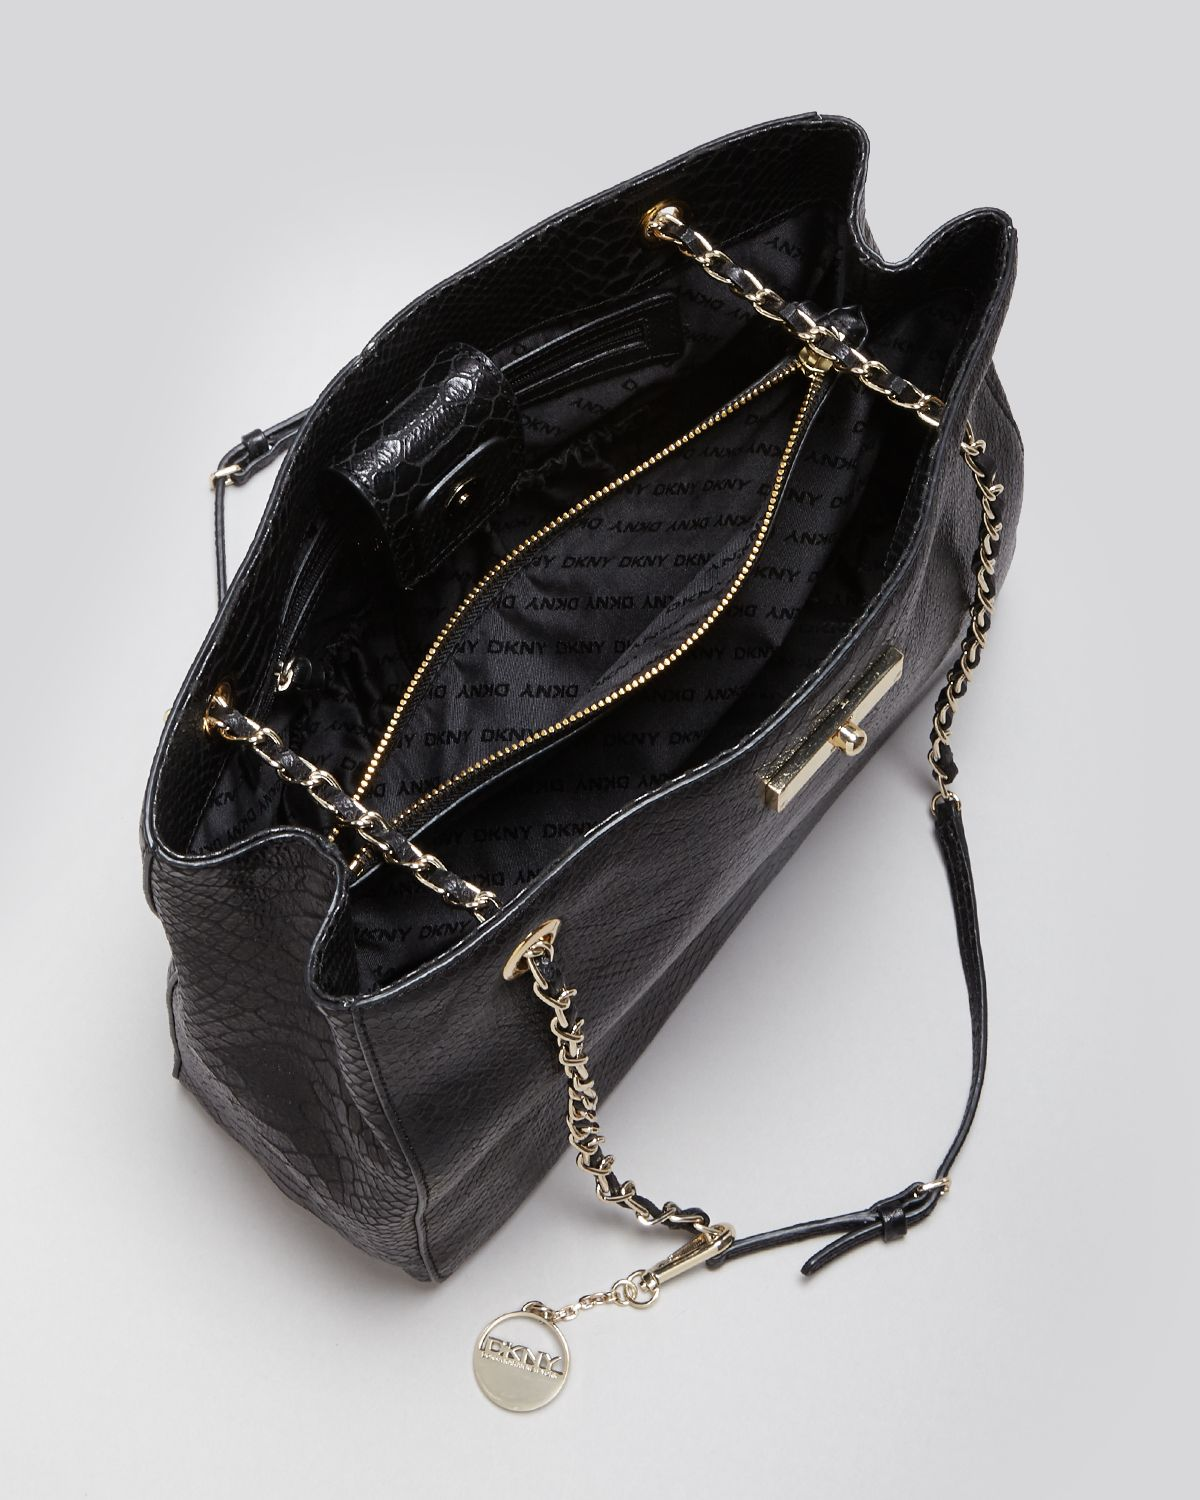 Dkny Shoulder Bag Python Chain Strap Tote in Black | Lyst